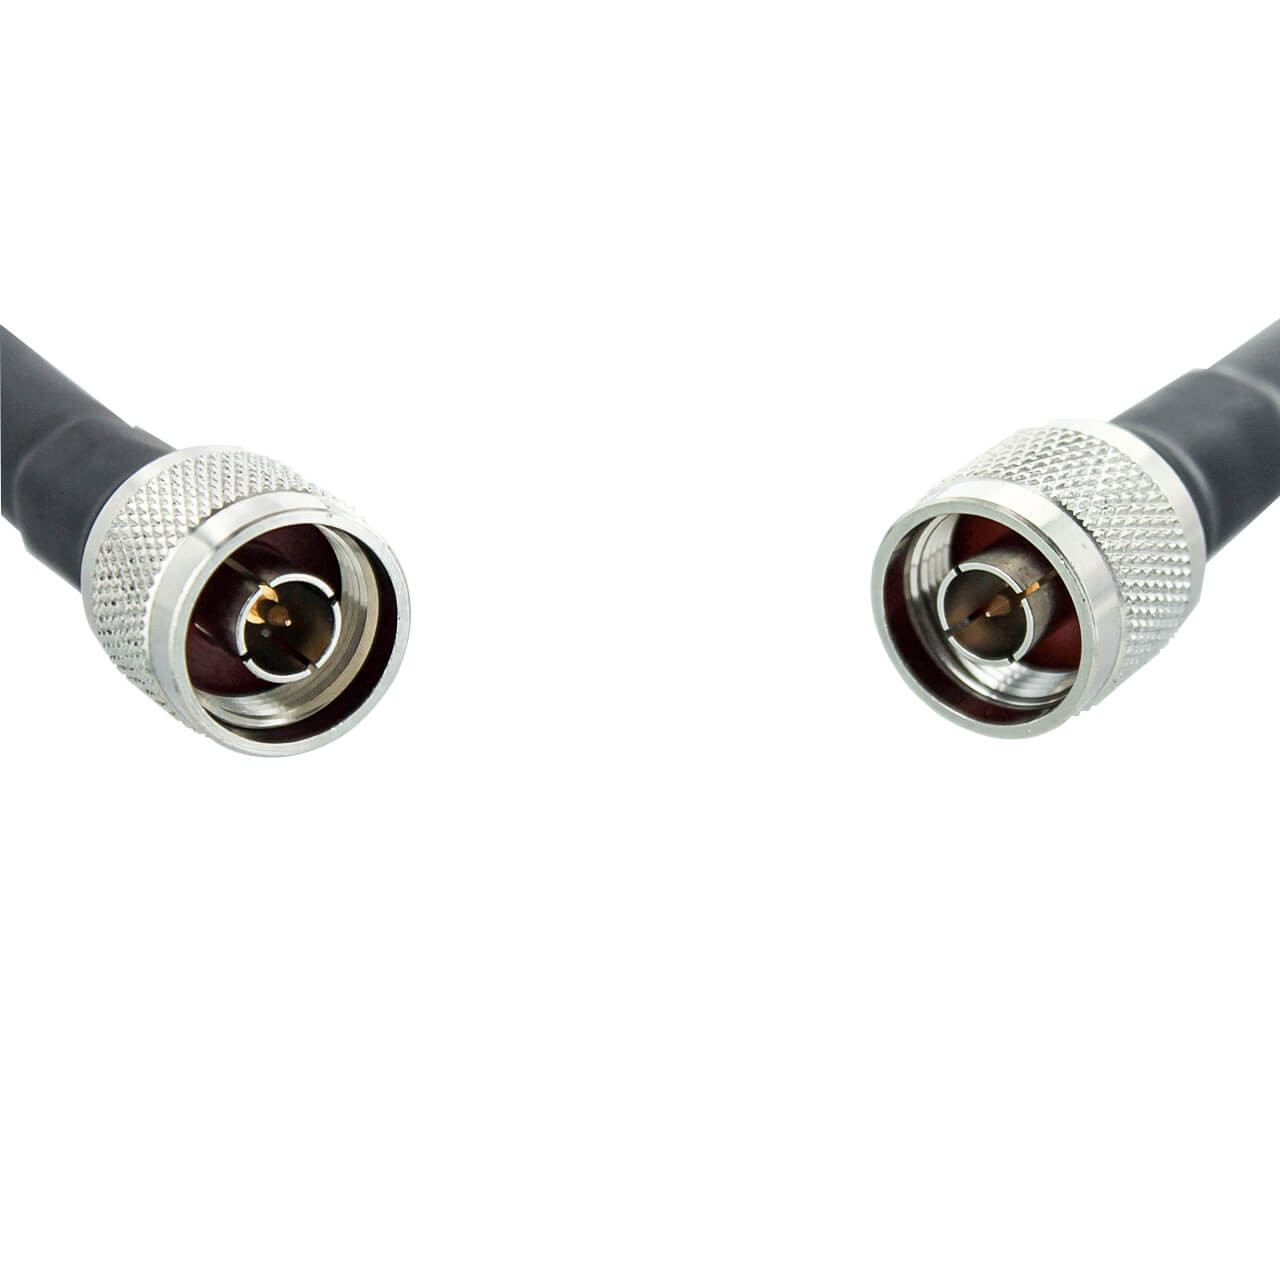 Bolton 400 Low Loss Cable - N-Male to N-Male PE Black Jacket 30 ft